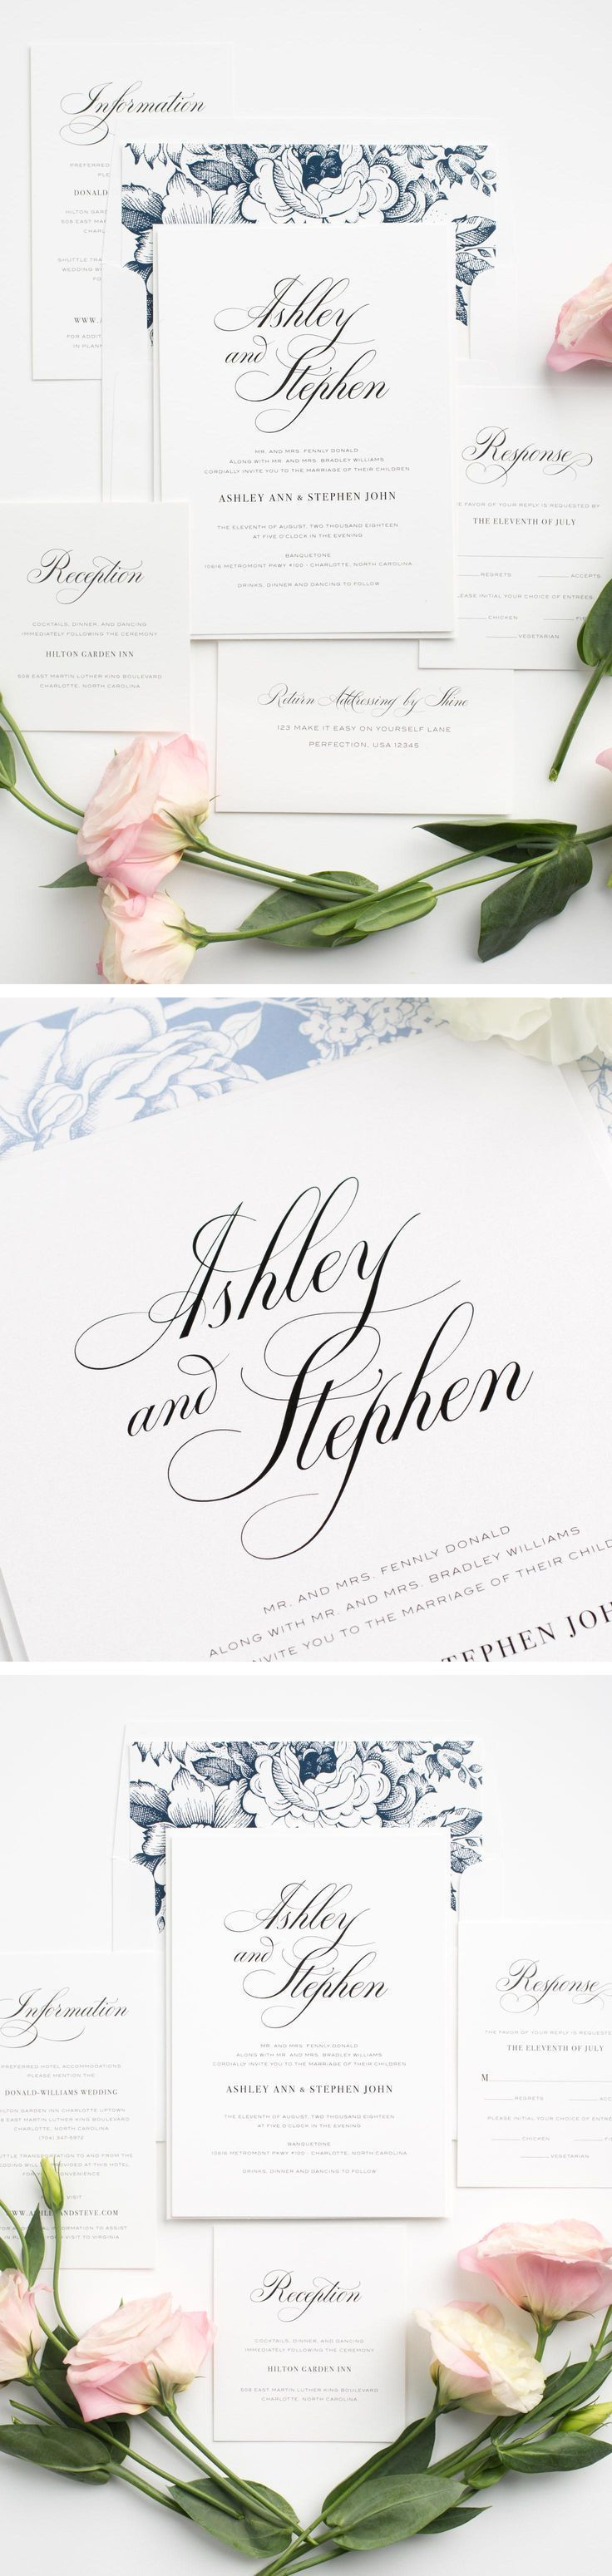 Elegant calligraphy wedding invitations in navy blue. Simple and Classic Wedding Invitations personalized to your wedding! Customize colors and wording to create the perfect invite for you big day.